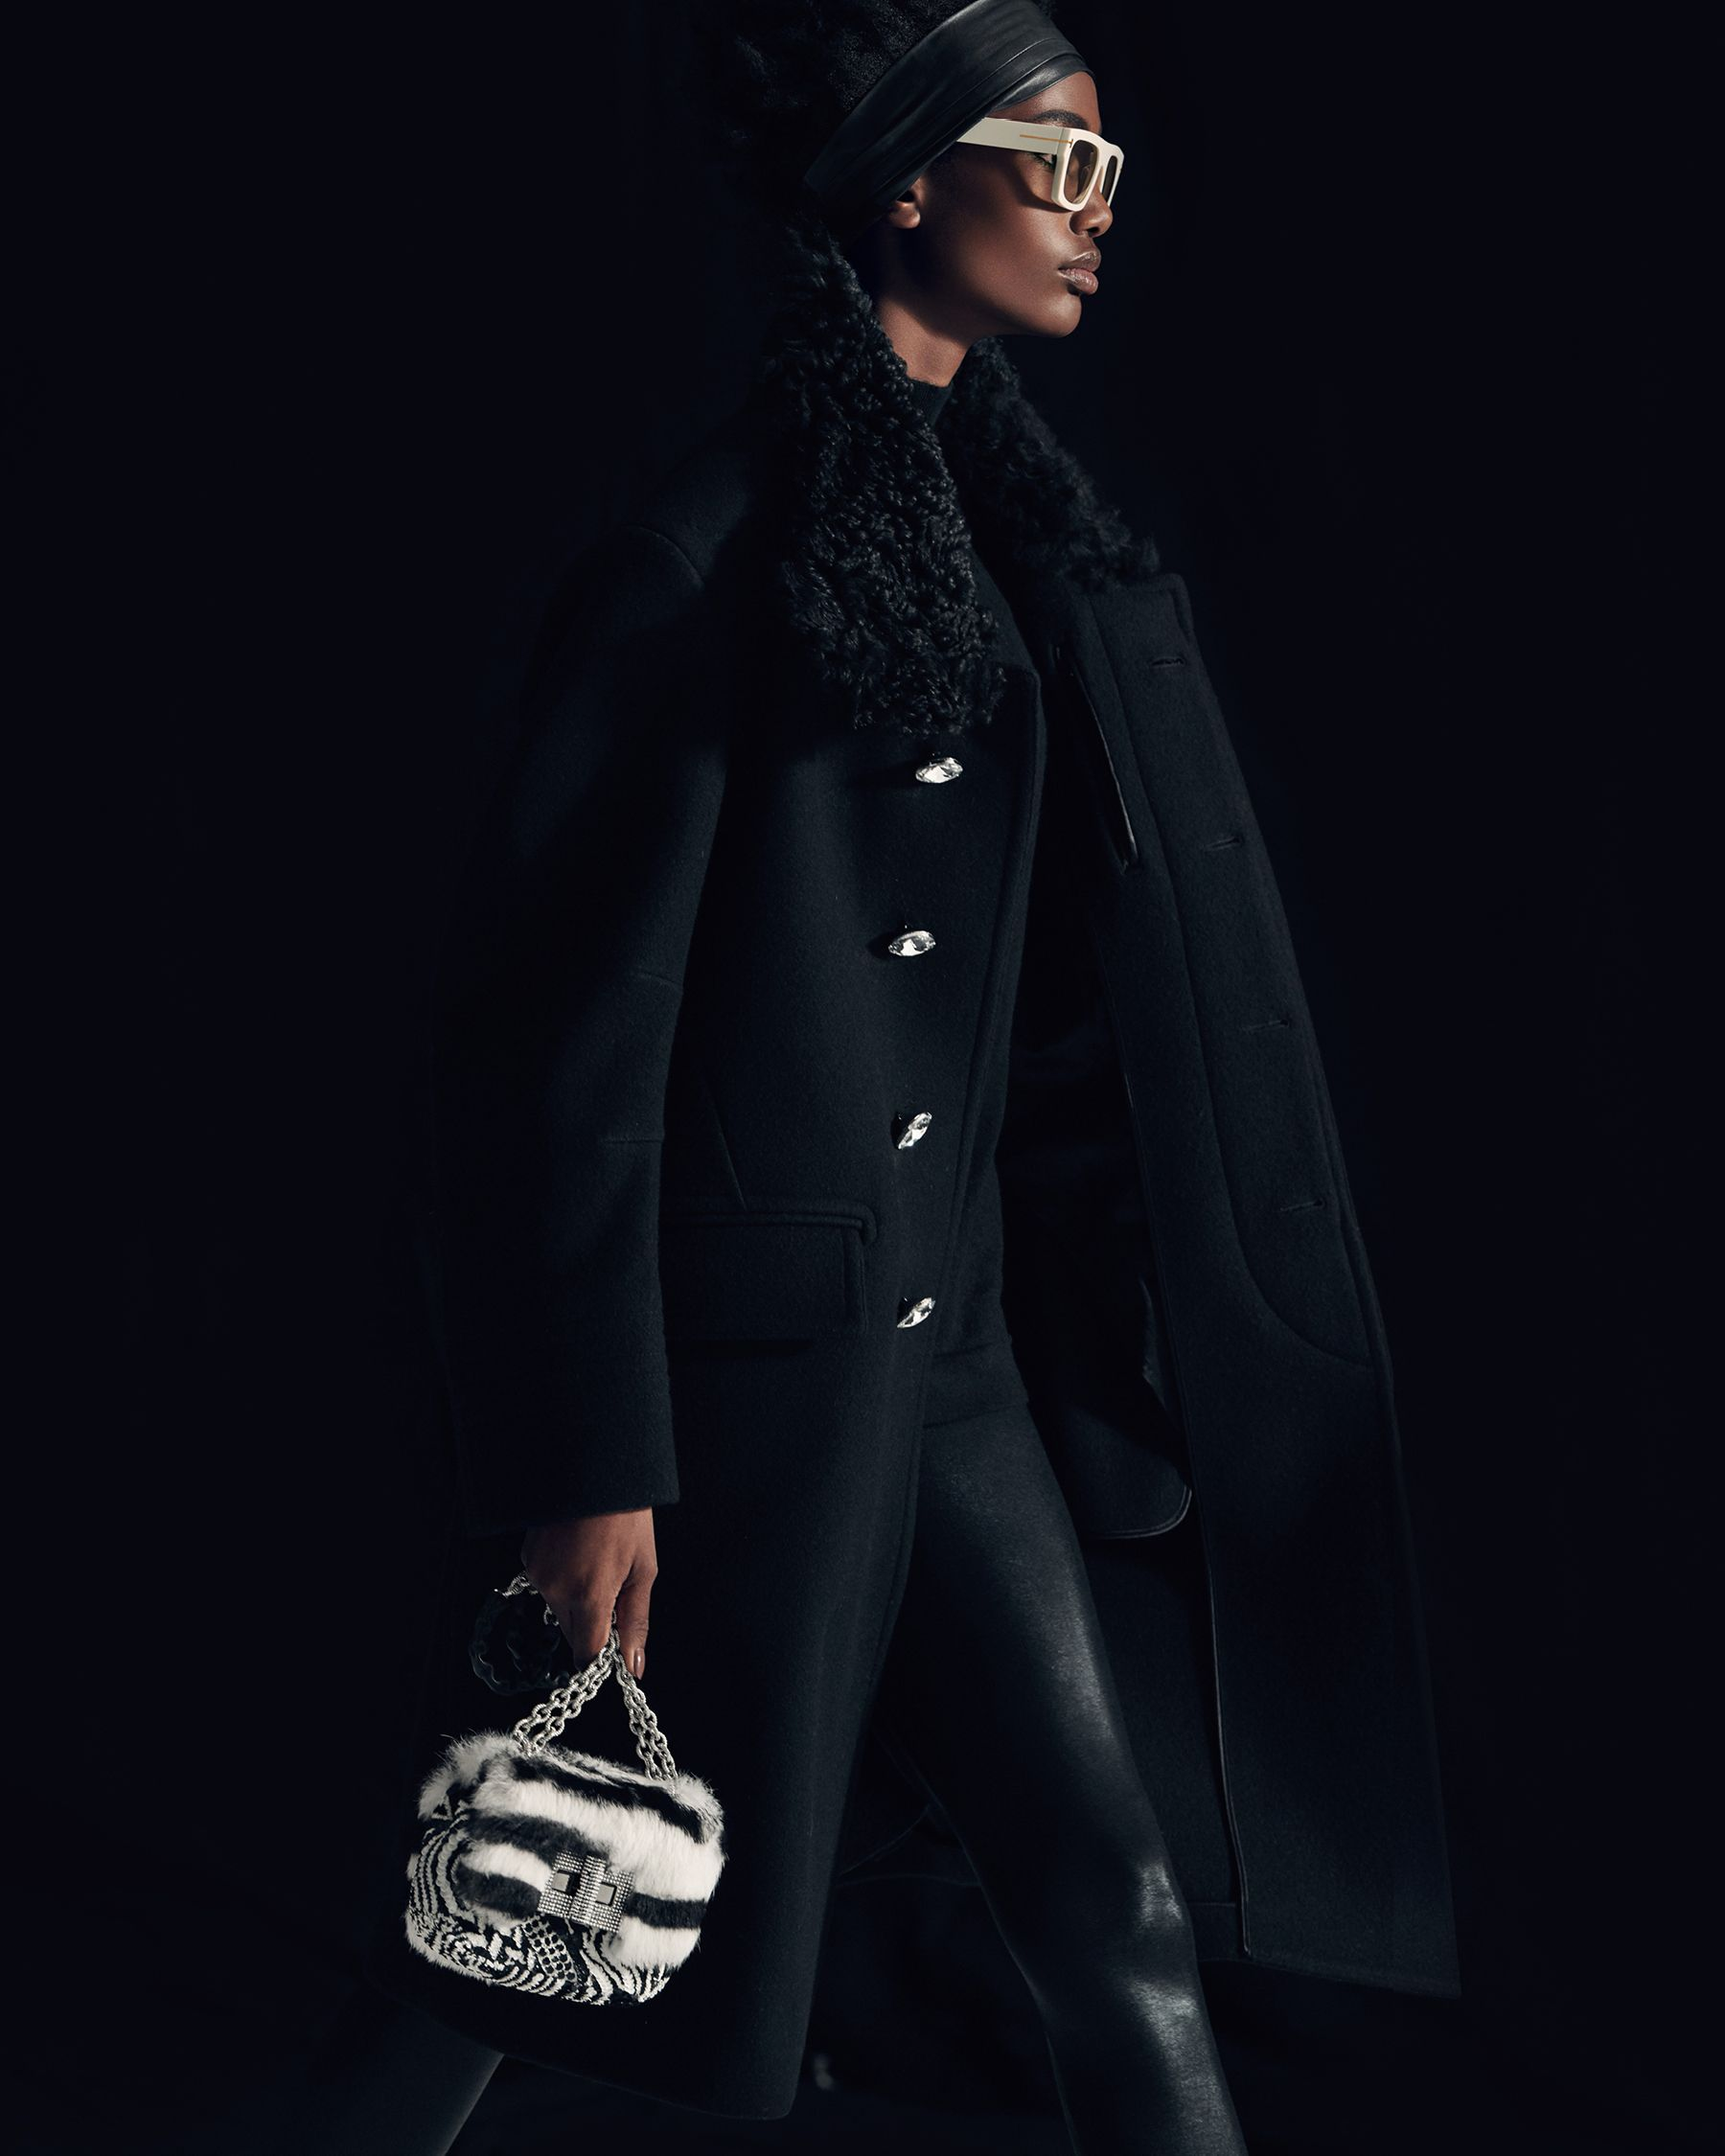 2019 year for lady- Tom fall ford winter campaign